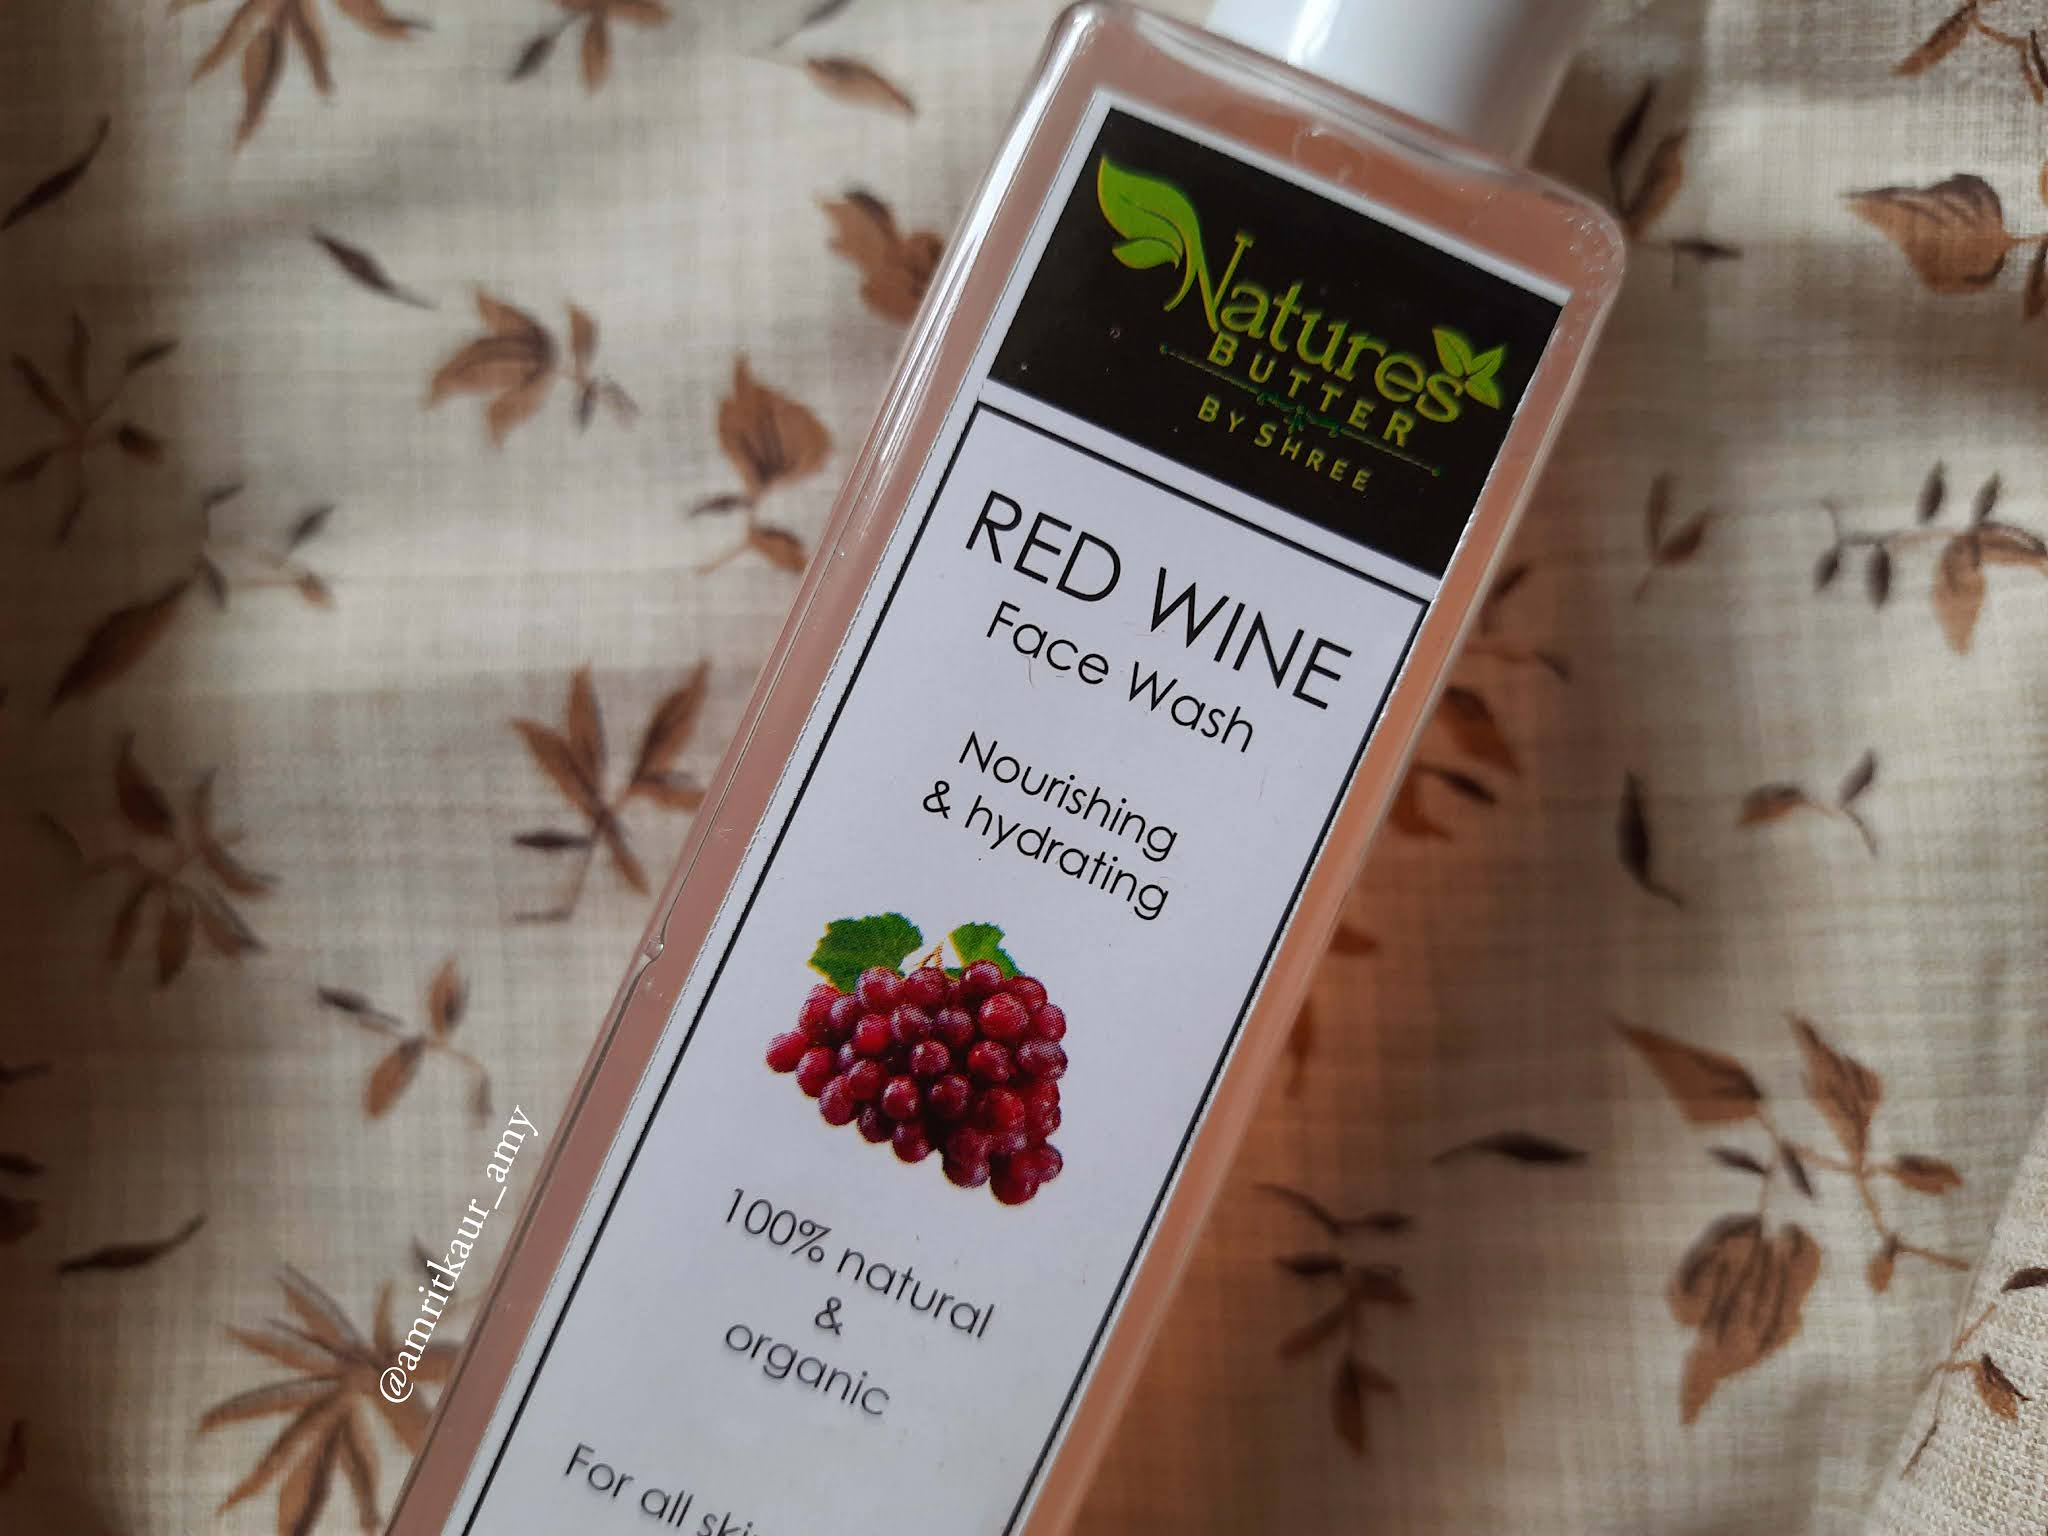 Natures Butter by Shree Red Wine Face Wash